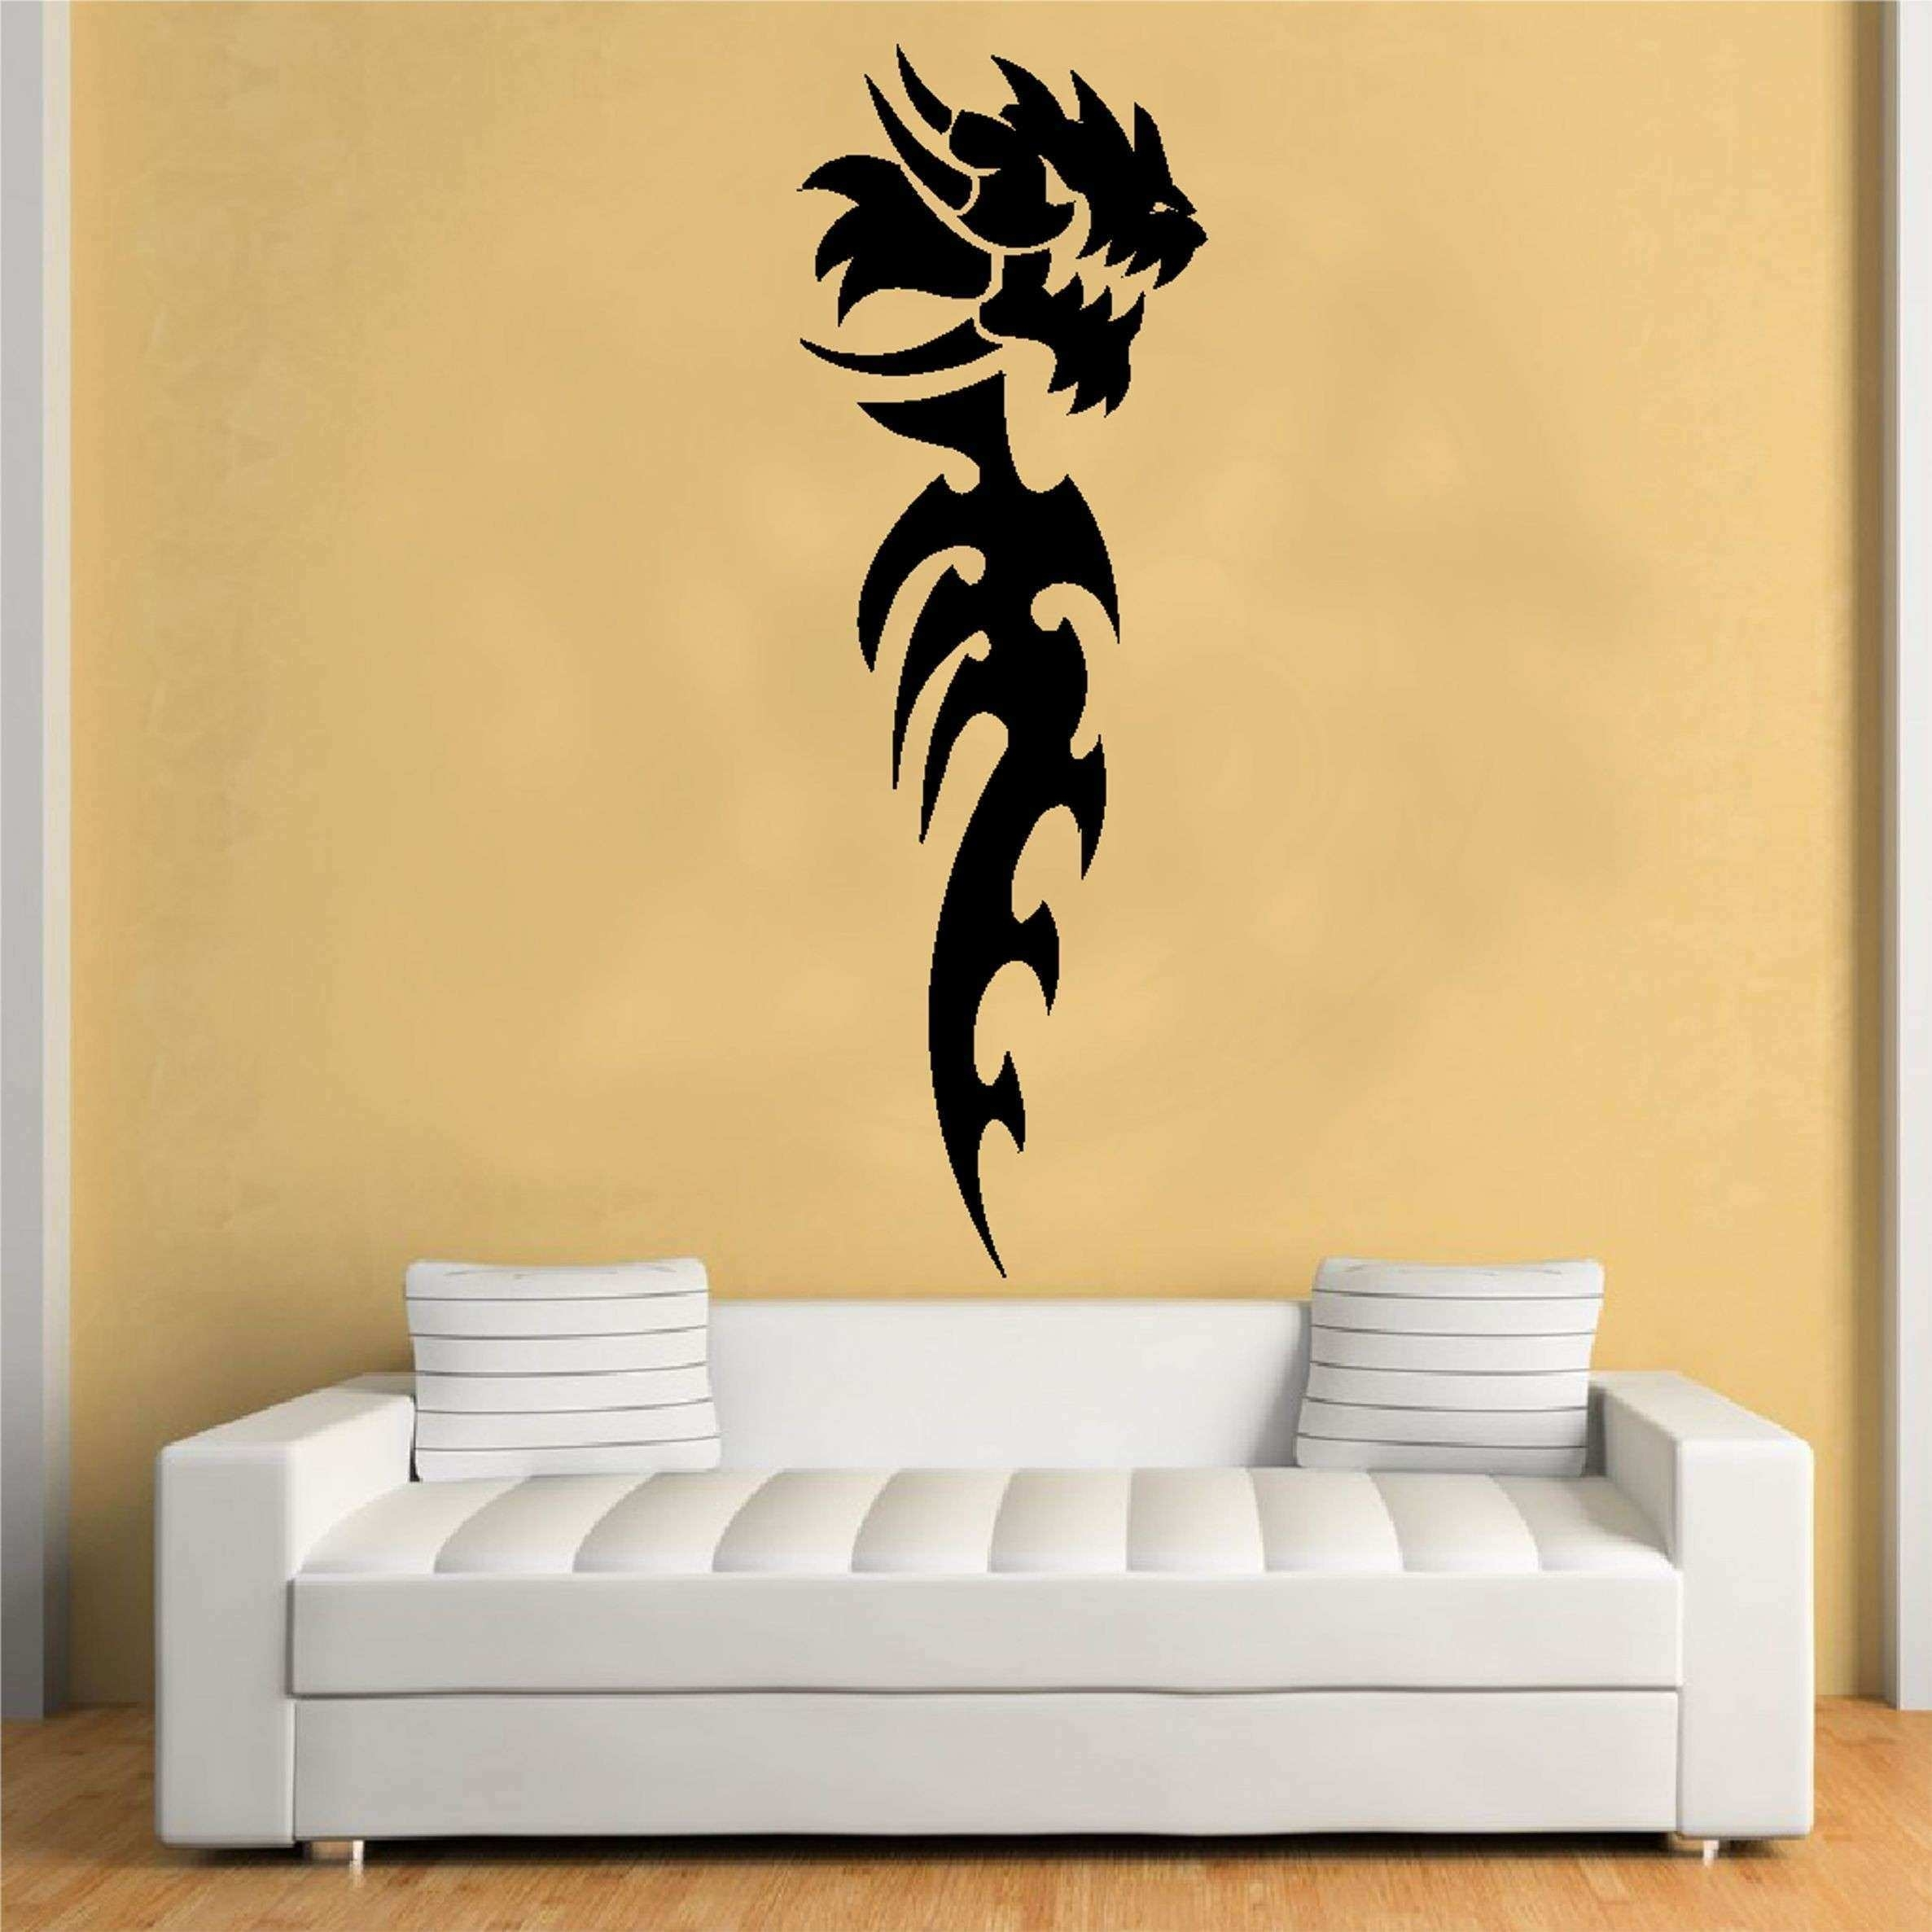 Paw Print Stencil Wall Painting Luxury Unusual Animal Wall Decor intended for Stencil Wall Art (Image 16 of 20)